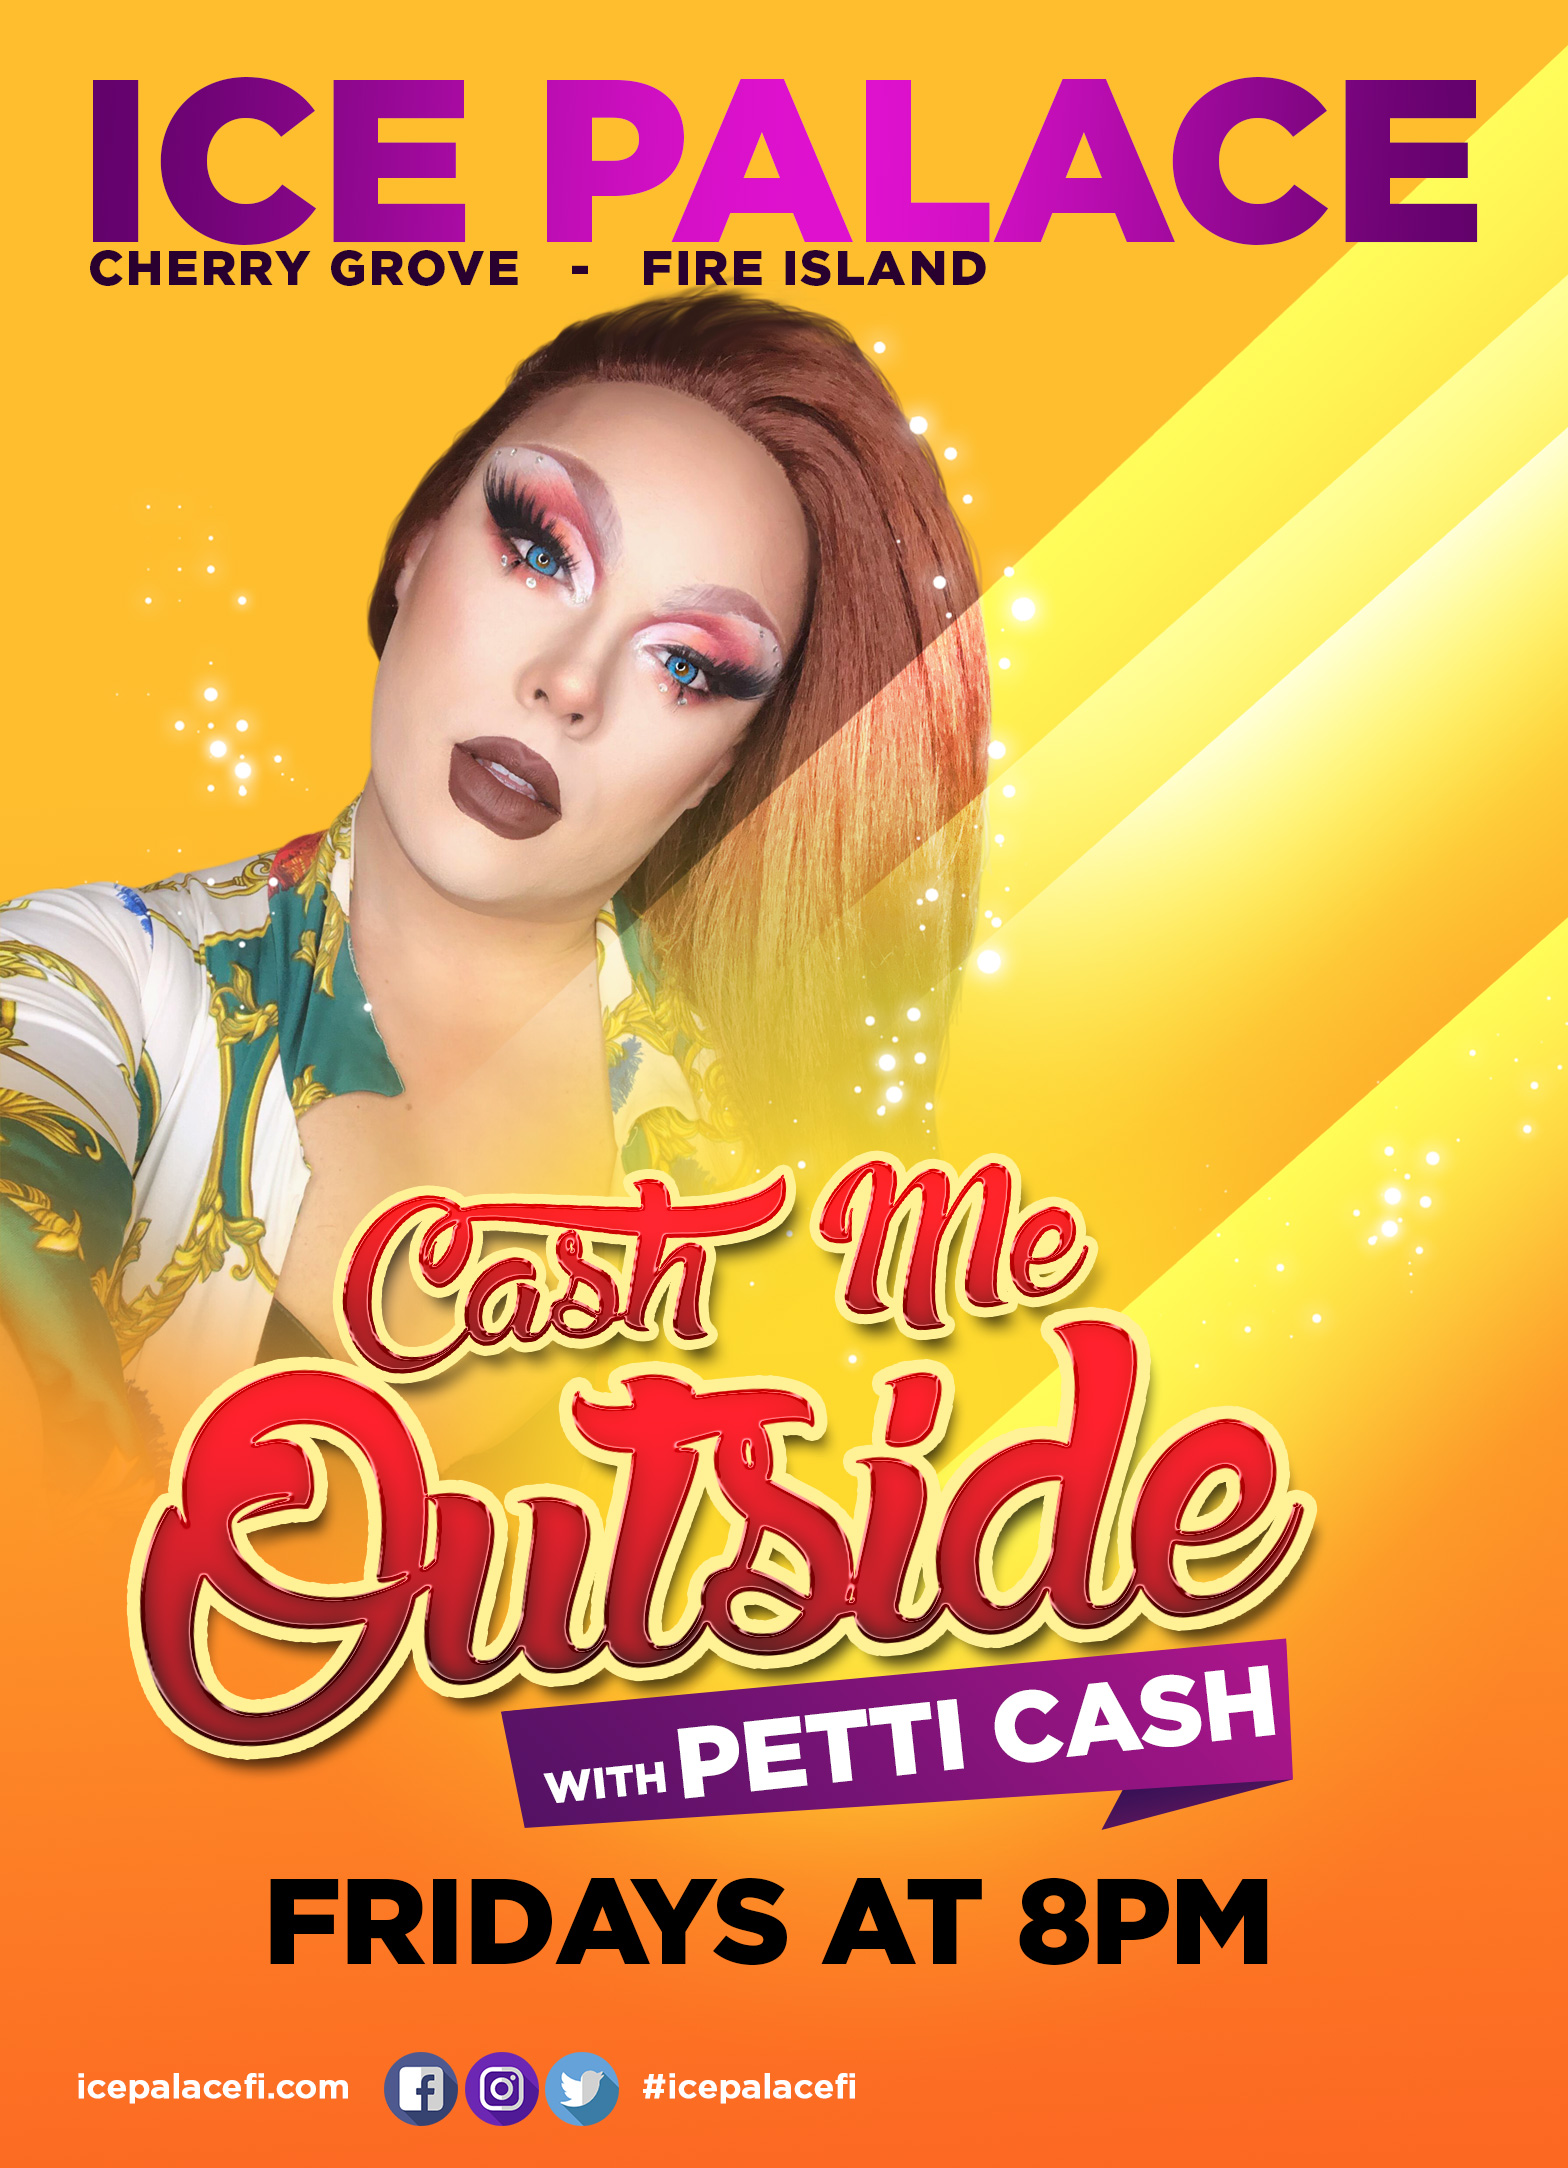 Cash me outside with Petti cash fridays at 8pm